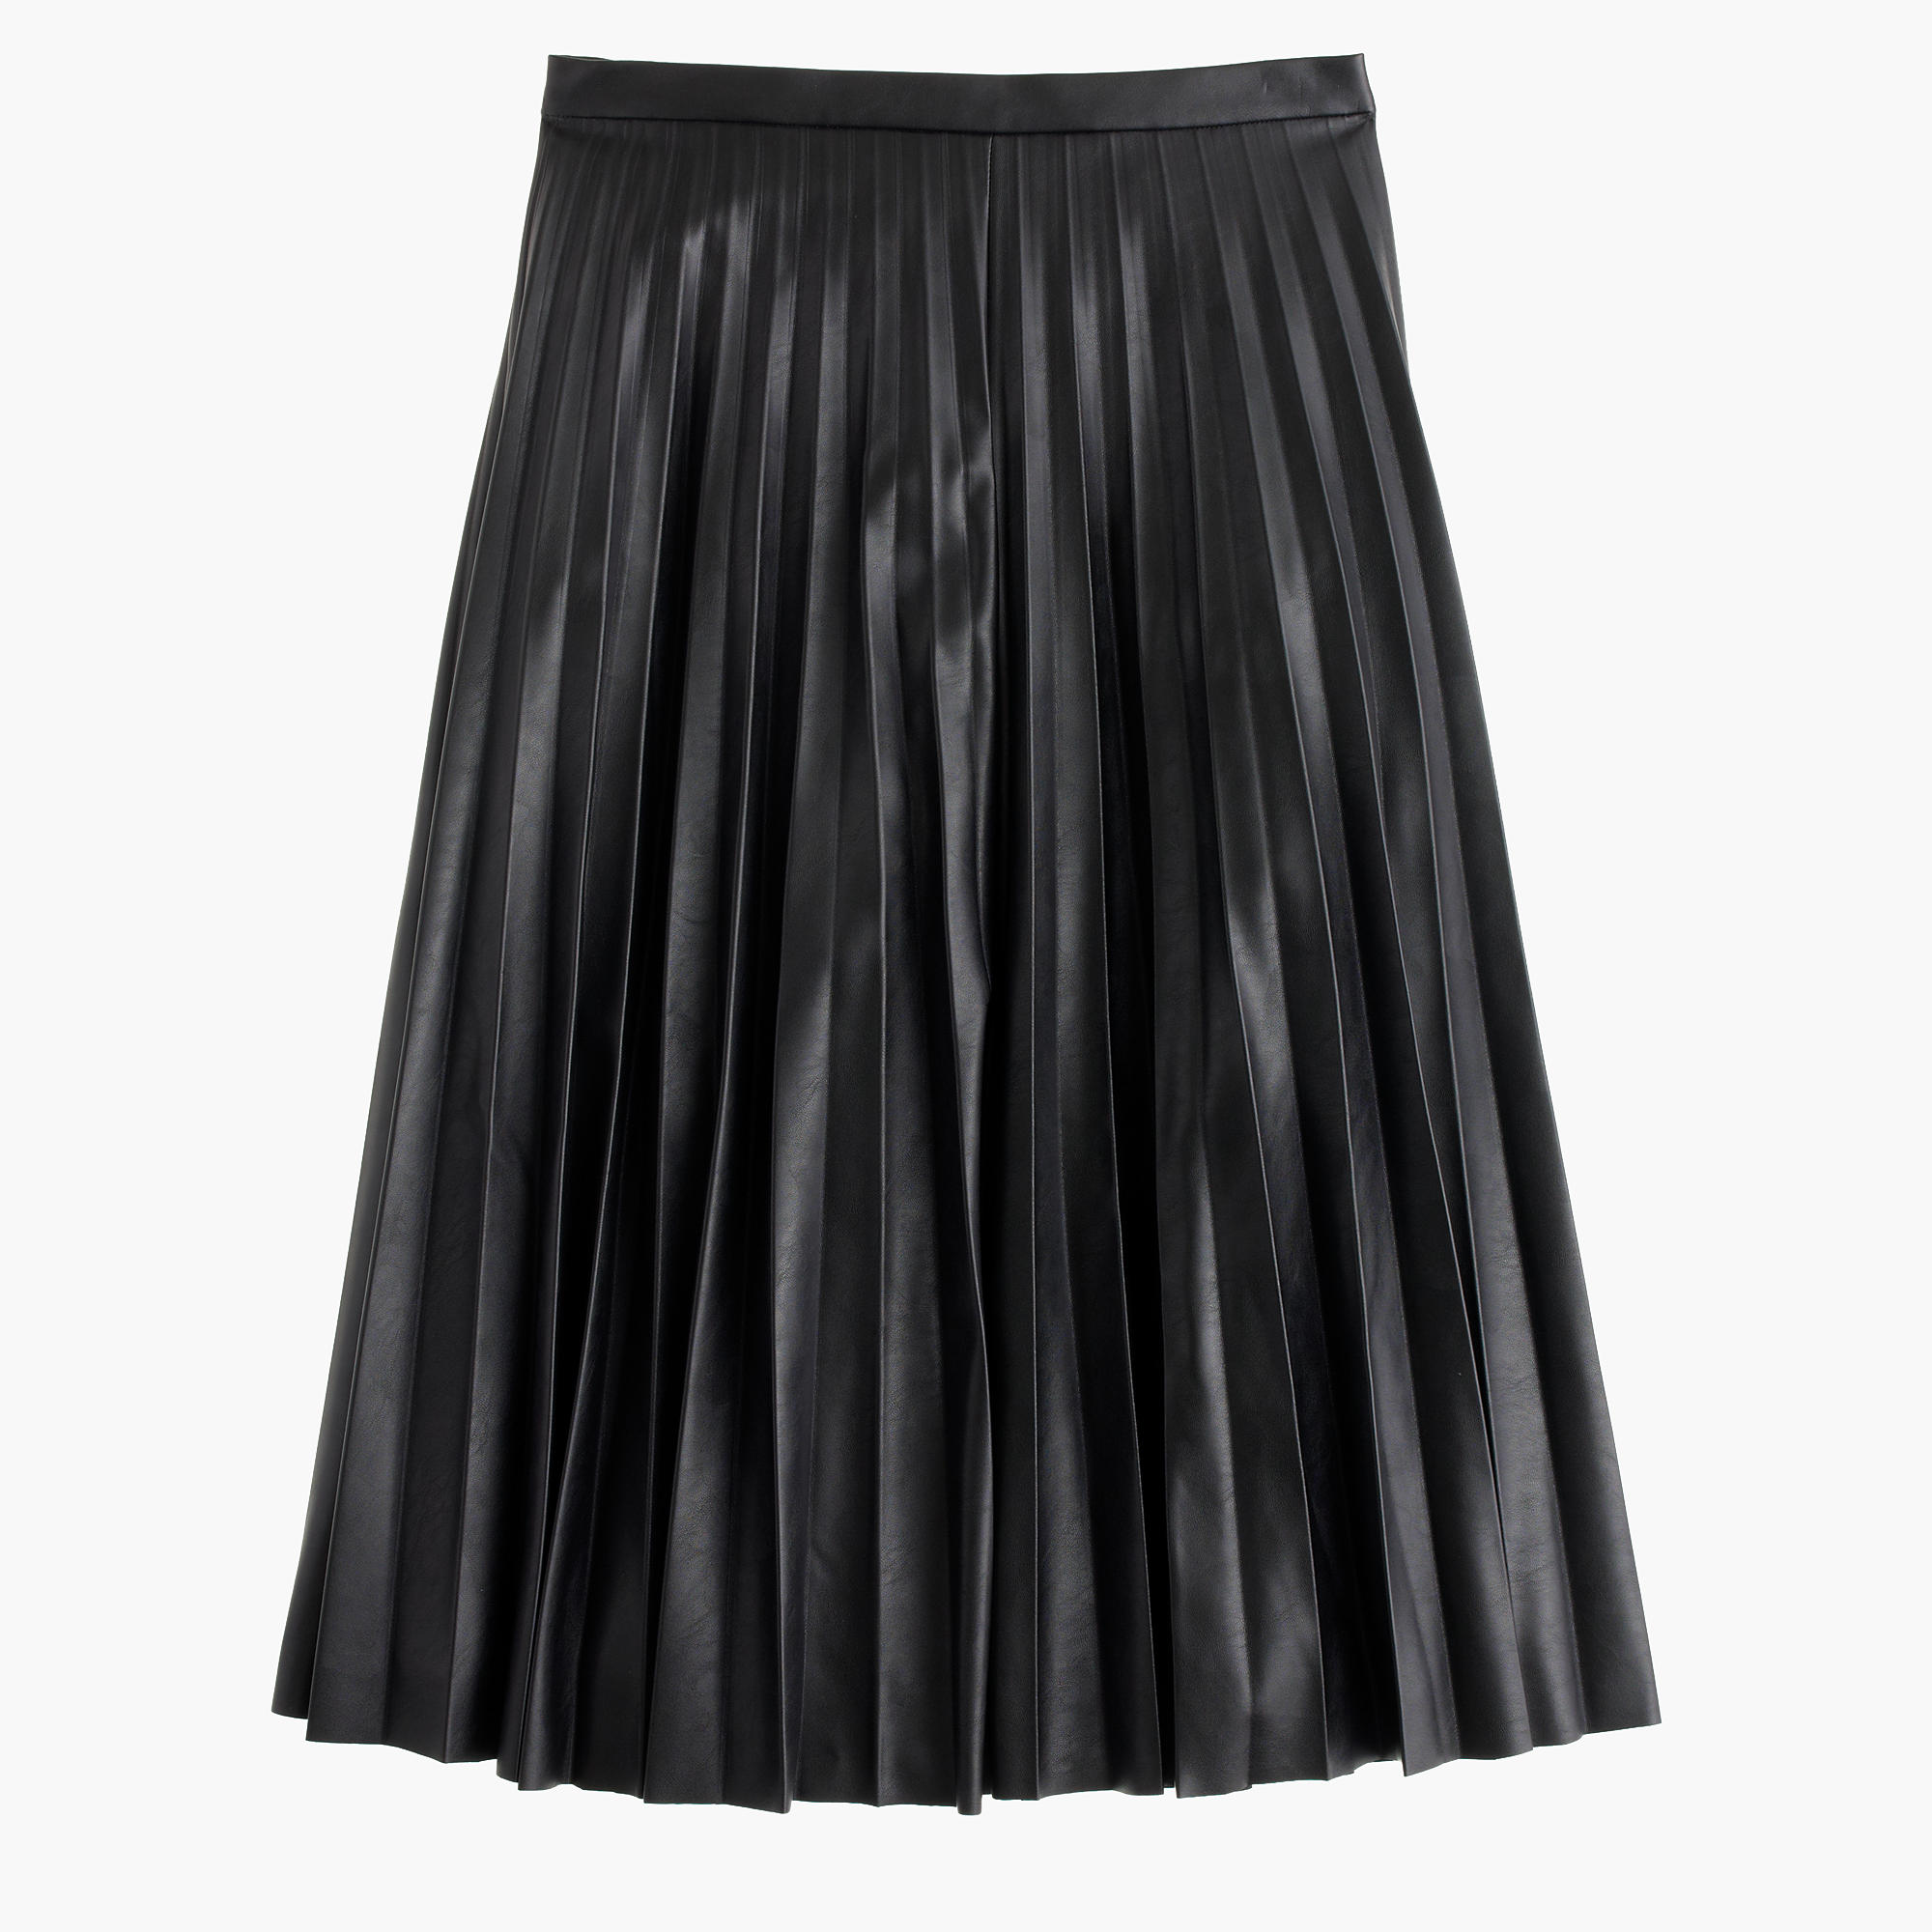 Faux-Leather Pleated Midi Skirt : Women's Skirts | J.Crew